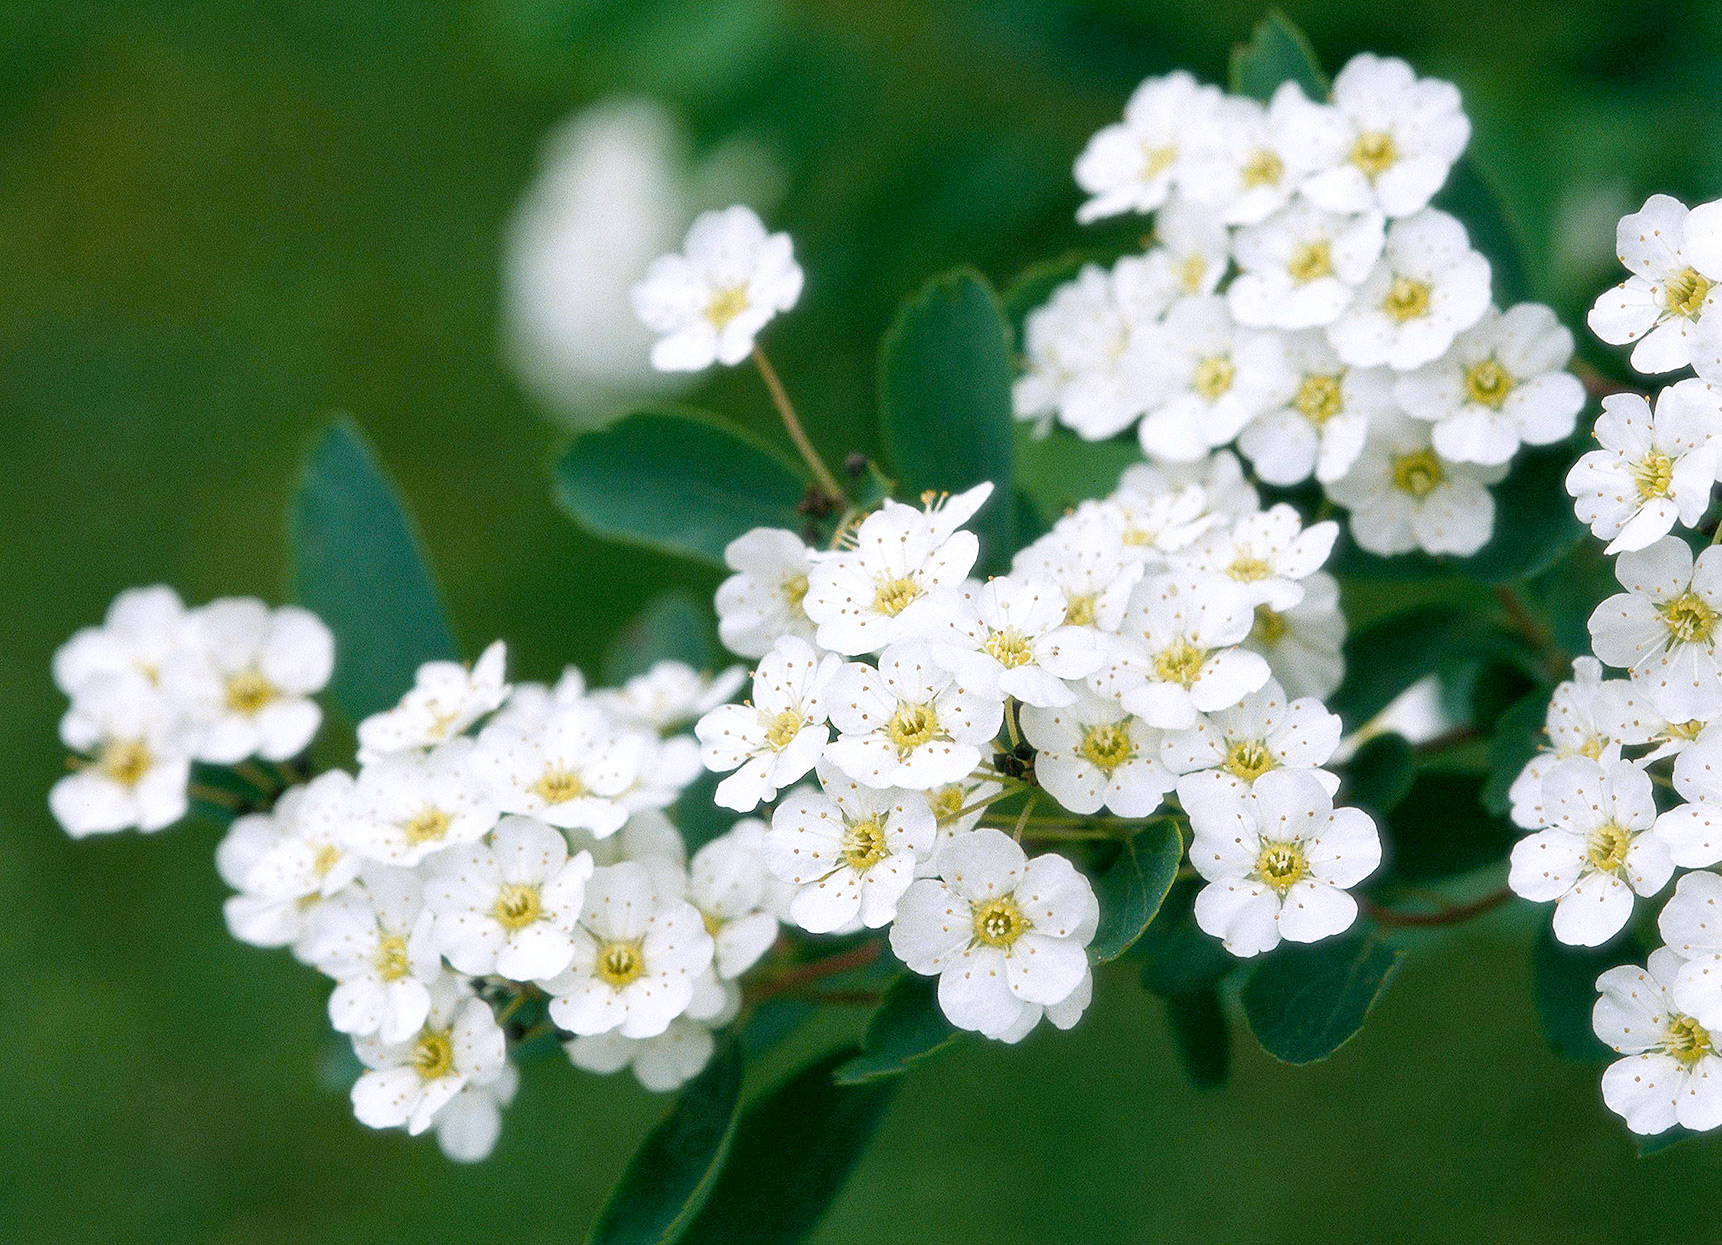 Spiraea nipponica 'Snowmound' with white blooms